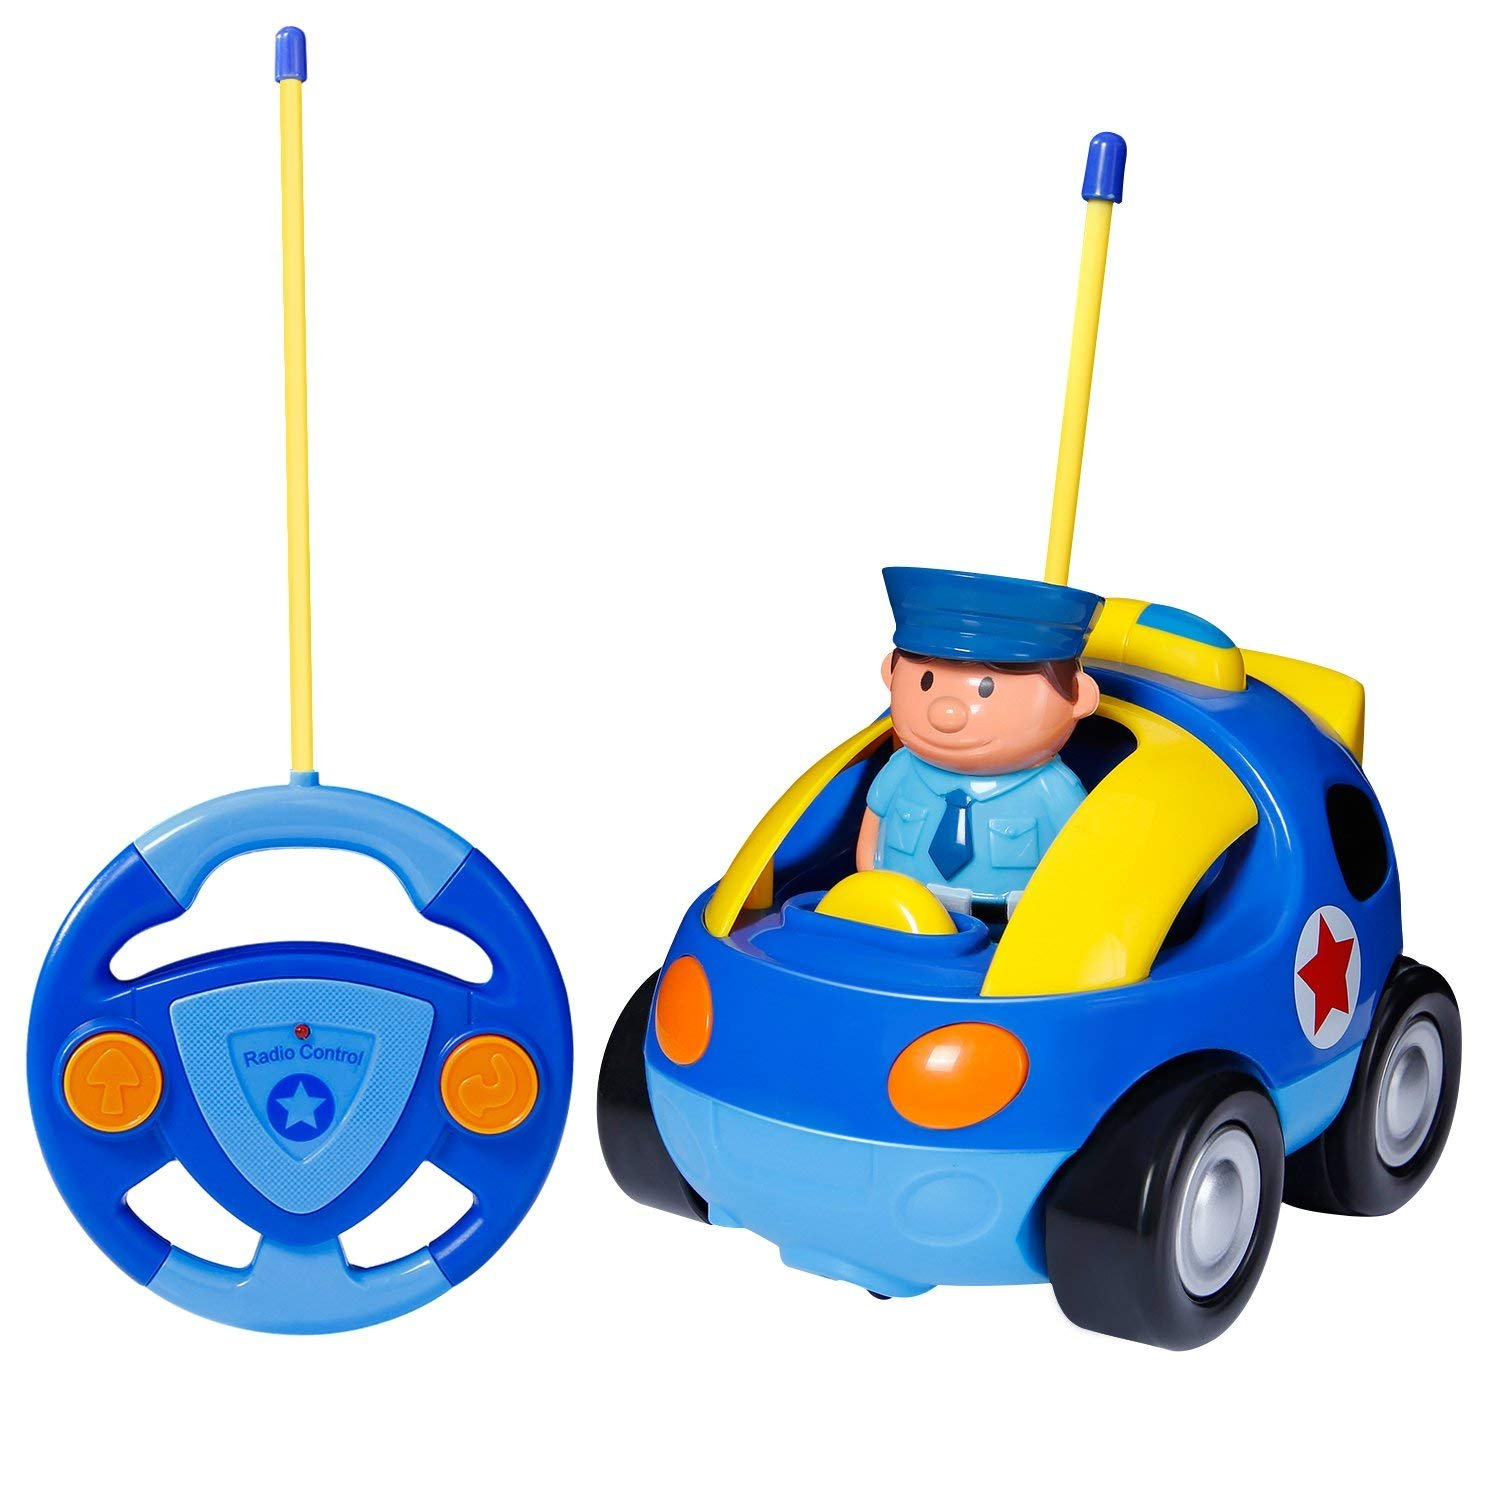 ANTAPRCIS Remote Control Car For Toddlers With Sound And Light RC Cartoon Racer Toys Birthday Gift Present 3 Year Olds Boys Girls Kids